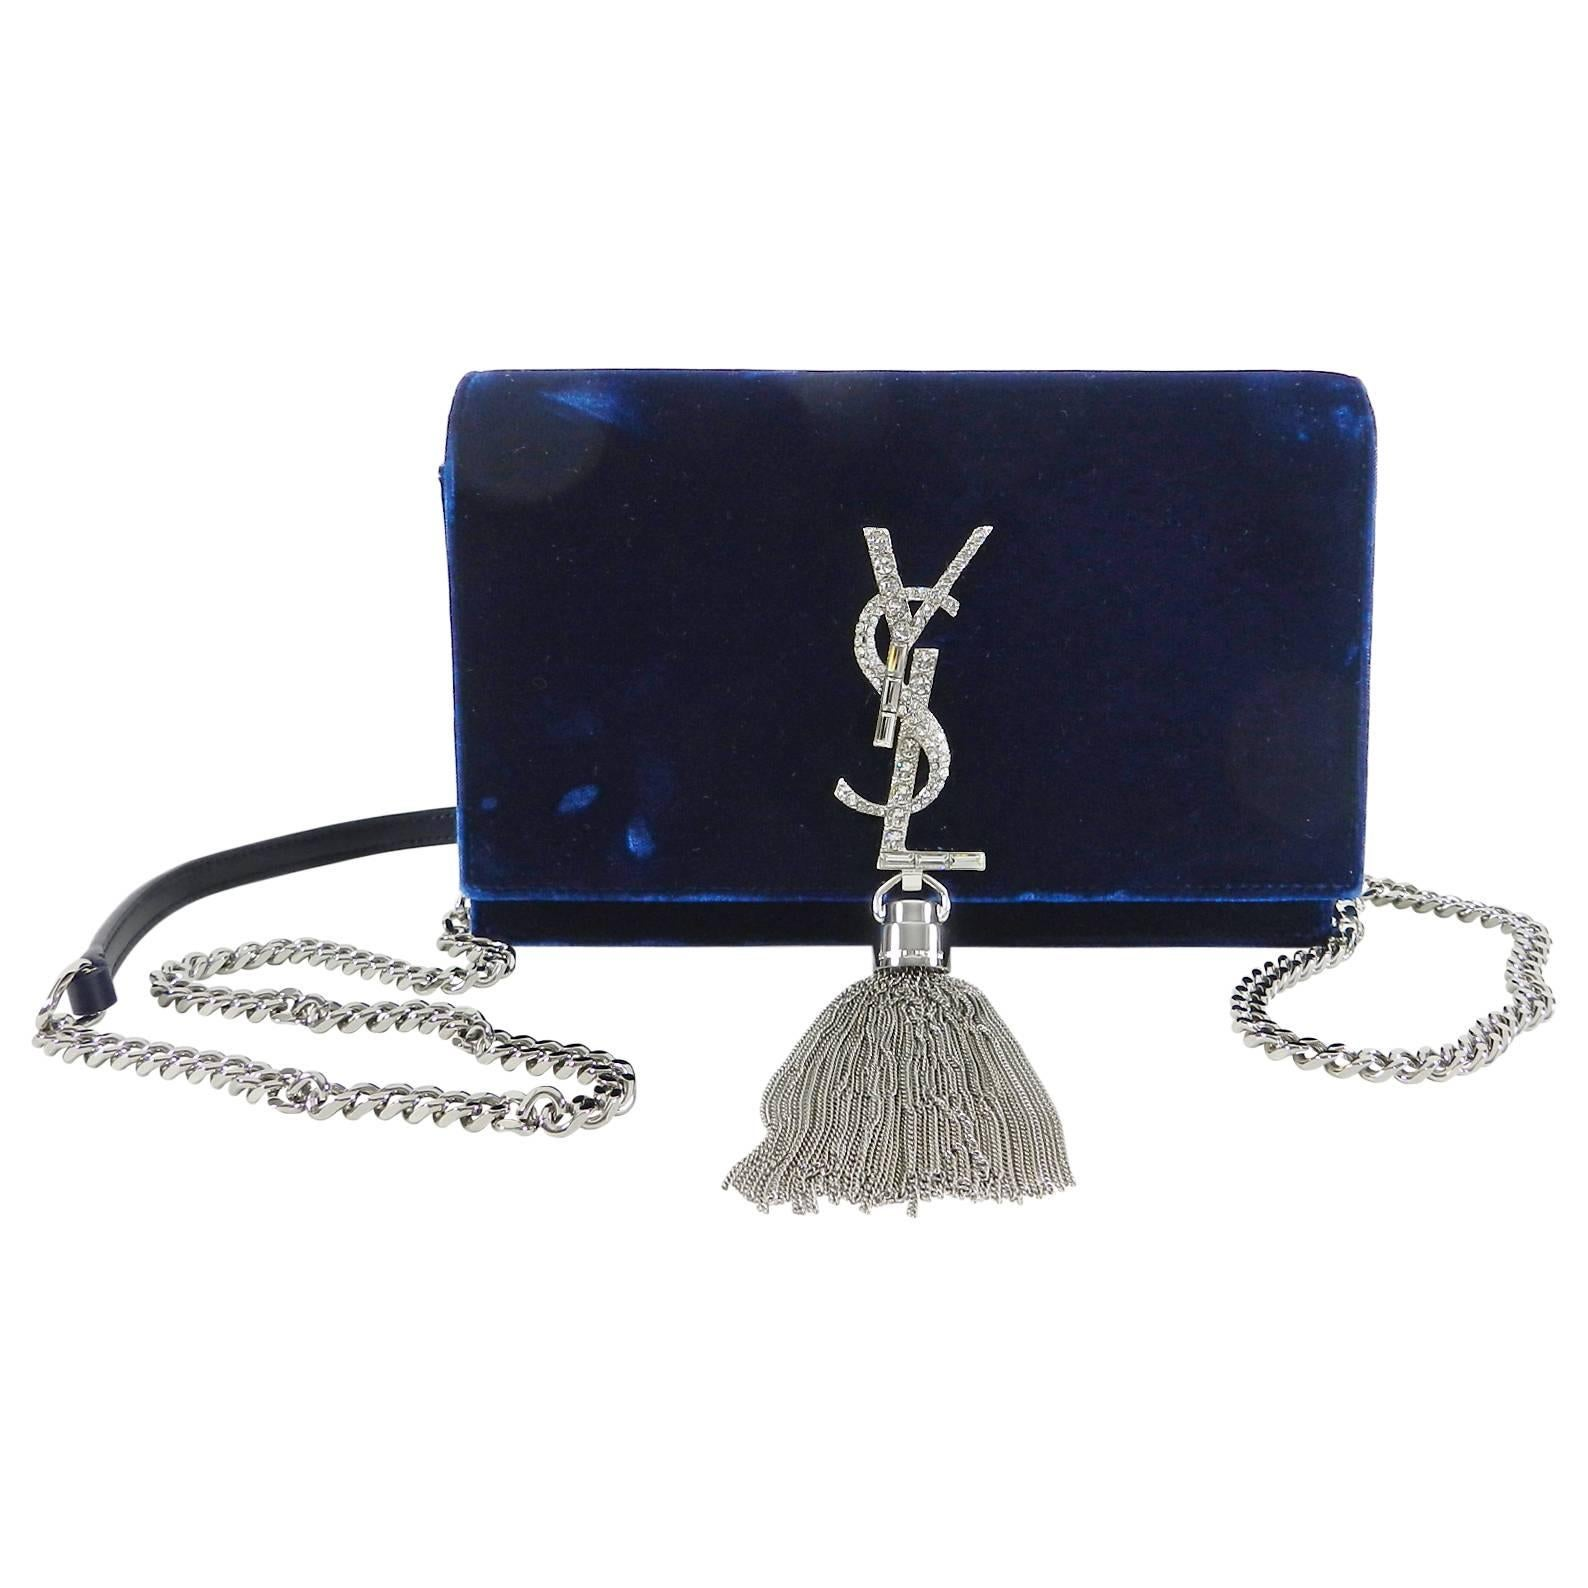 8a694ad32969 Saint Laurent Kate Tassel Blue Velvet and Rhinestone Crossbody Bag at  1stdibs